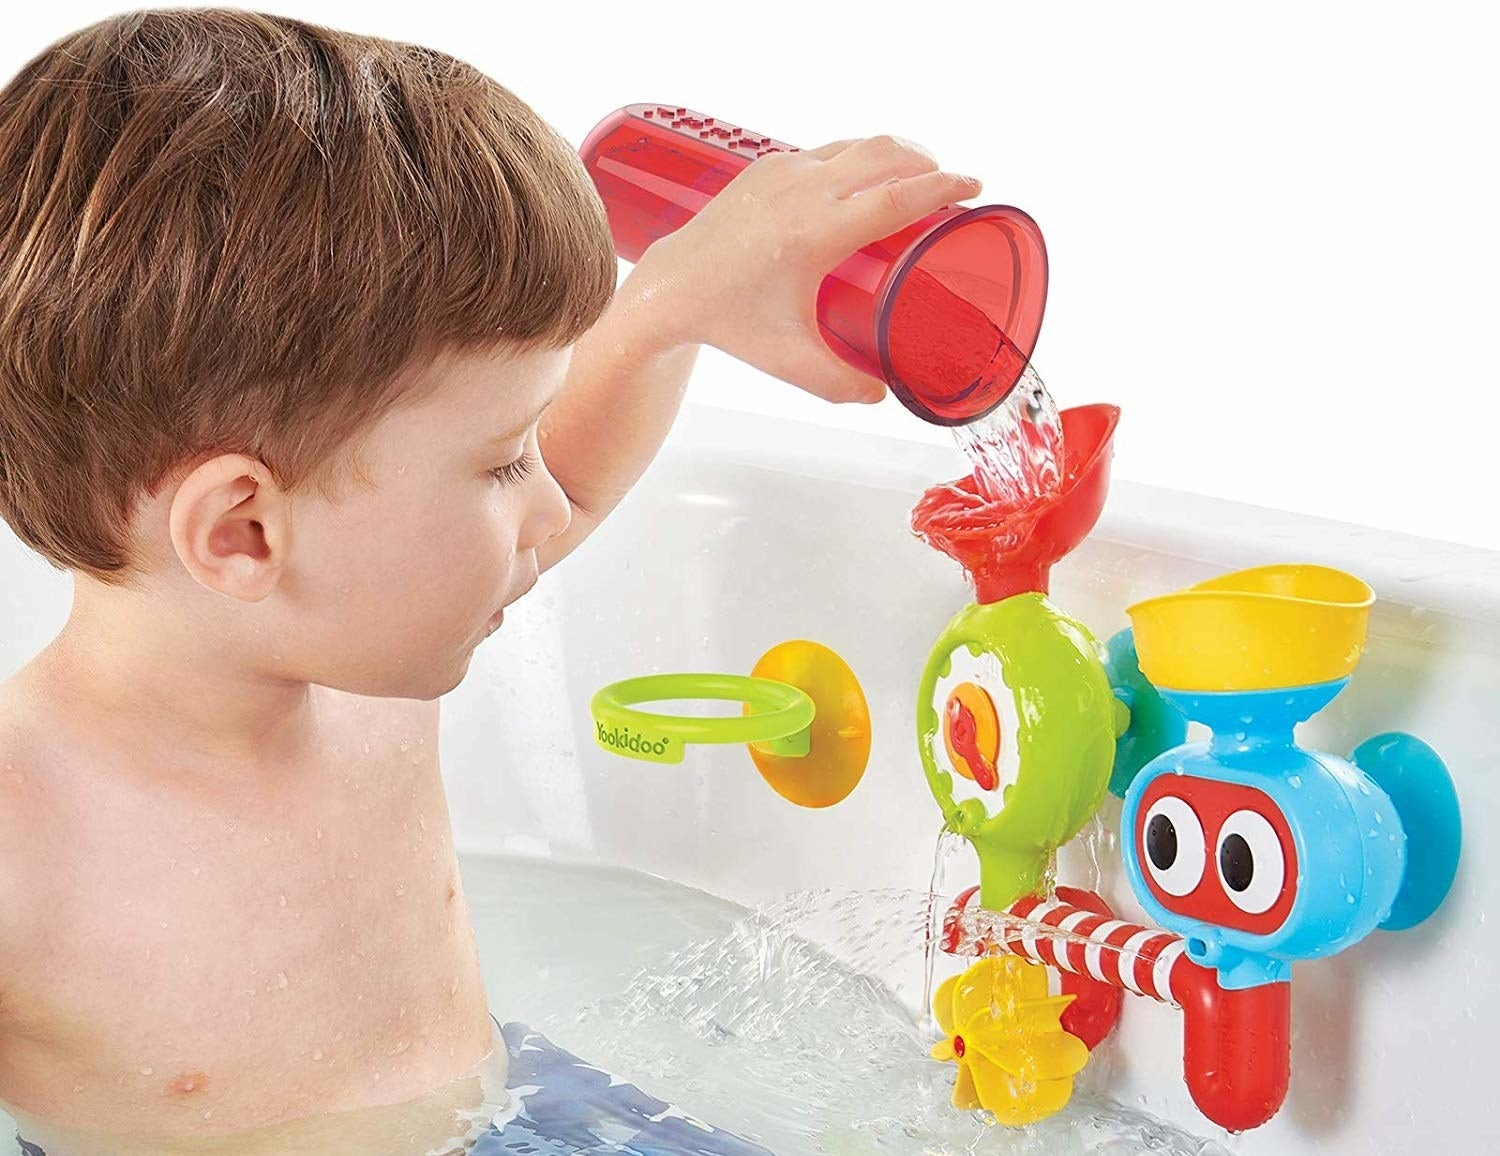 A child model in a tub pouring water into a multi-colored water lab